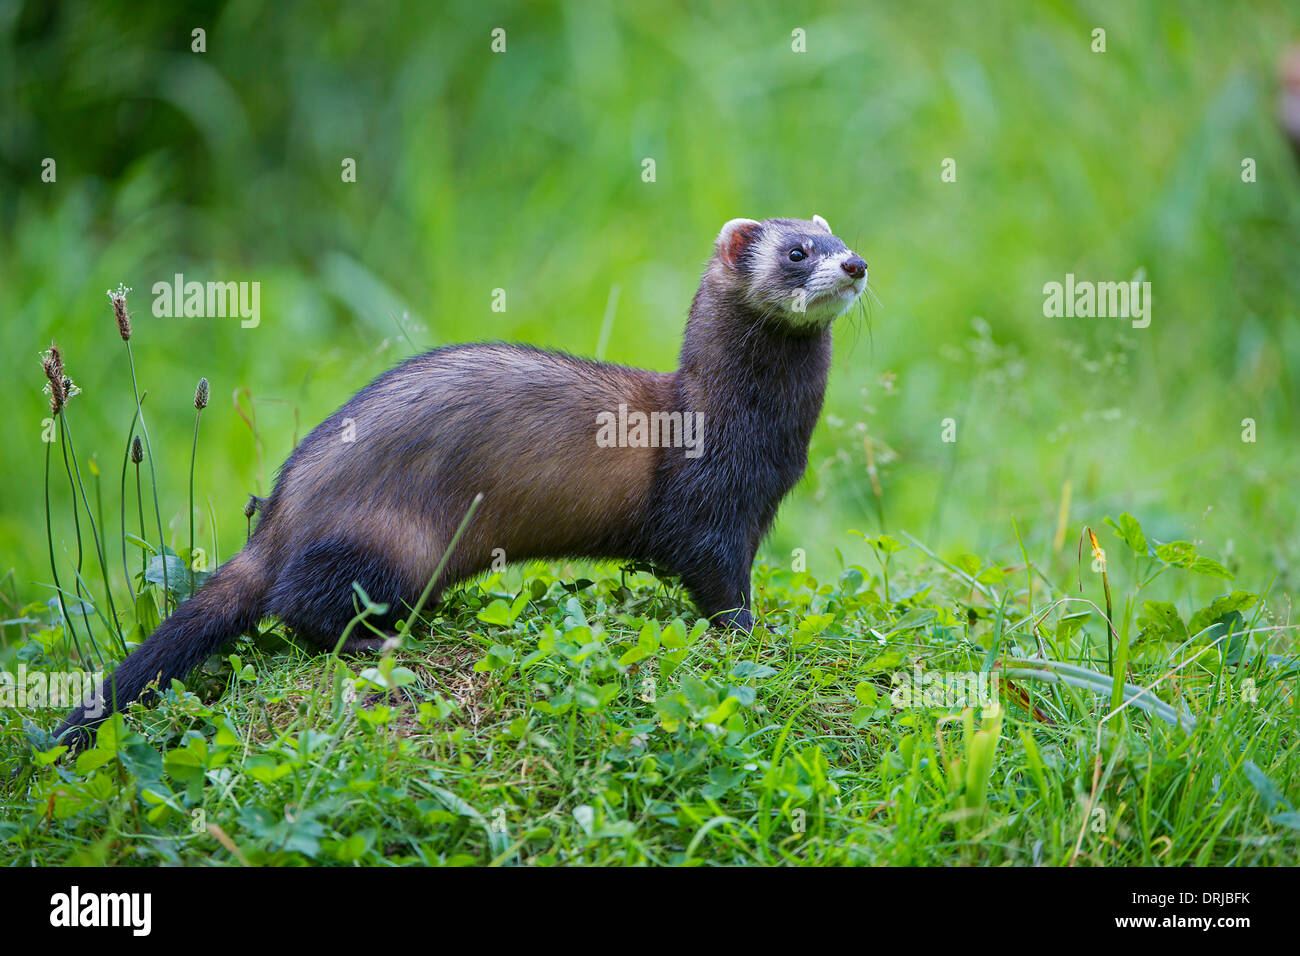 european polecat fell iltis marder mustela putorius raubtier stockfoto lizenzfreies bild. Black Bedroom Furniture Sets. Home Design Ideas